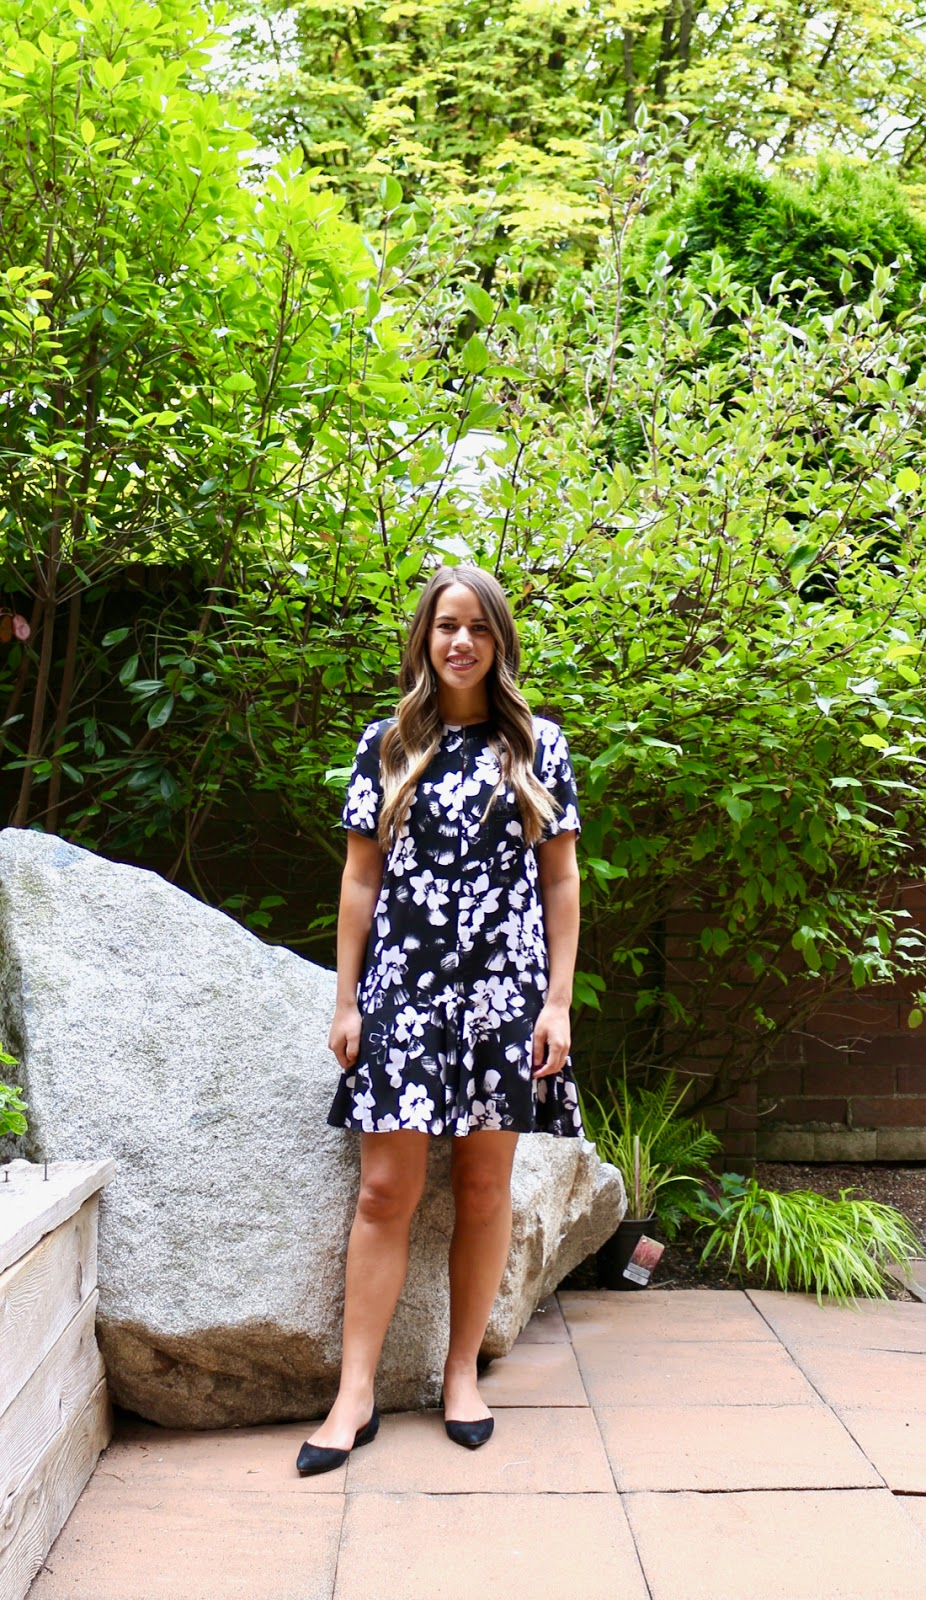 Jules in Flats -Ruffle Hem Drop Waist Floral Shift Dress (Business Casual Spring Workwear on a Budget)